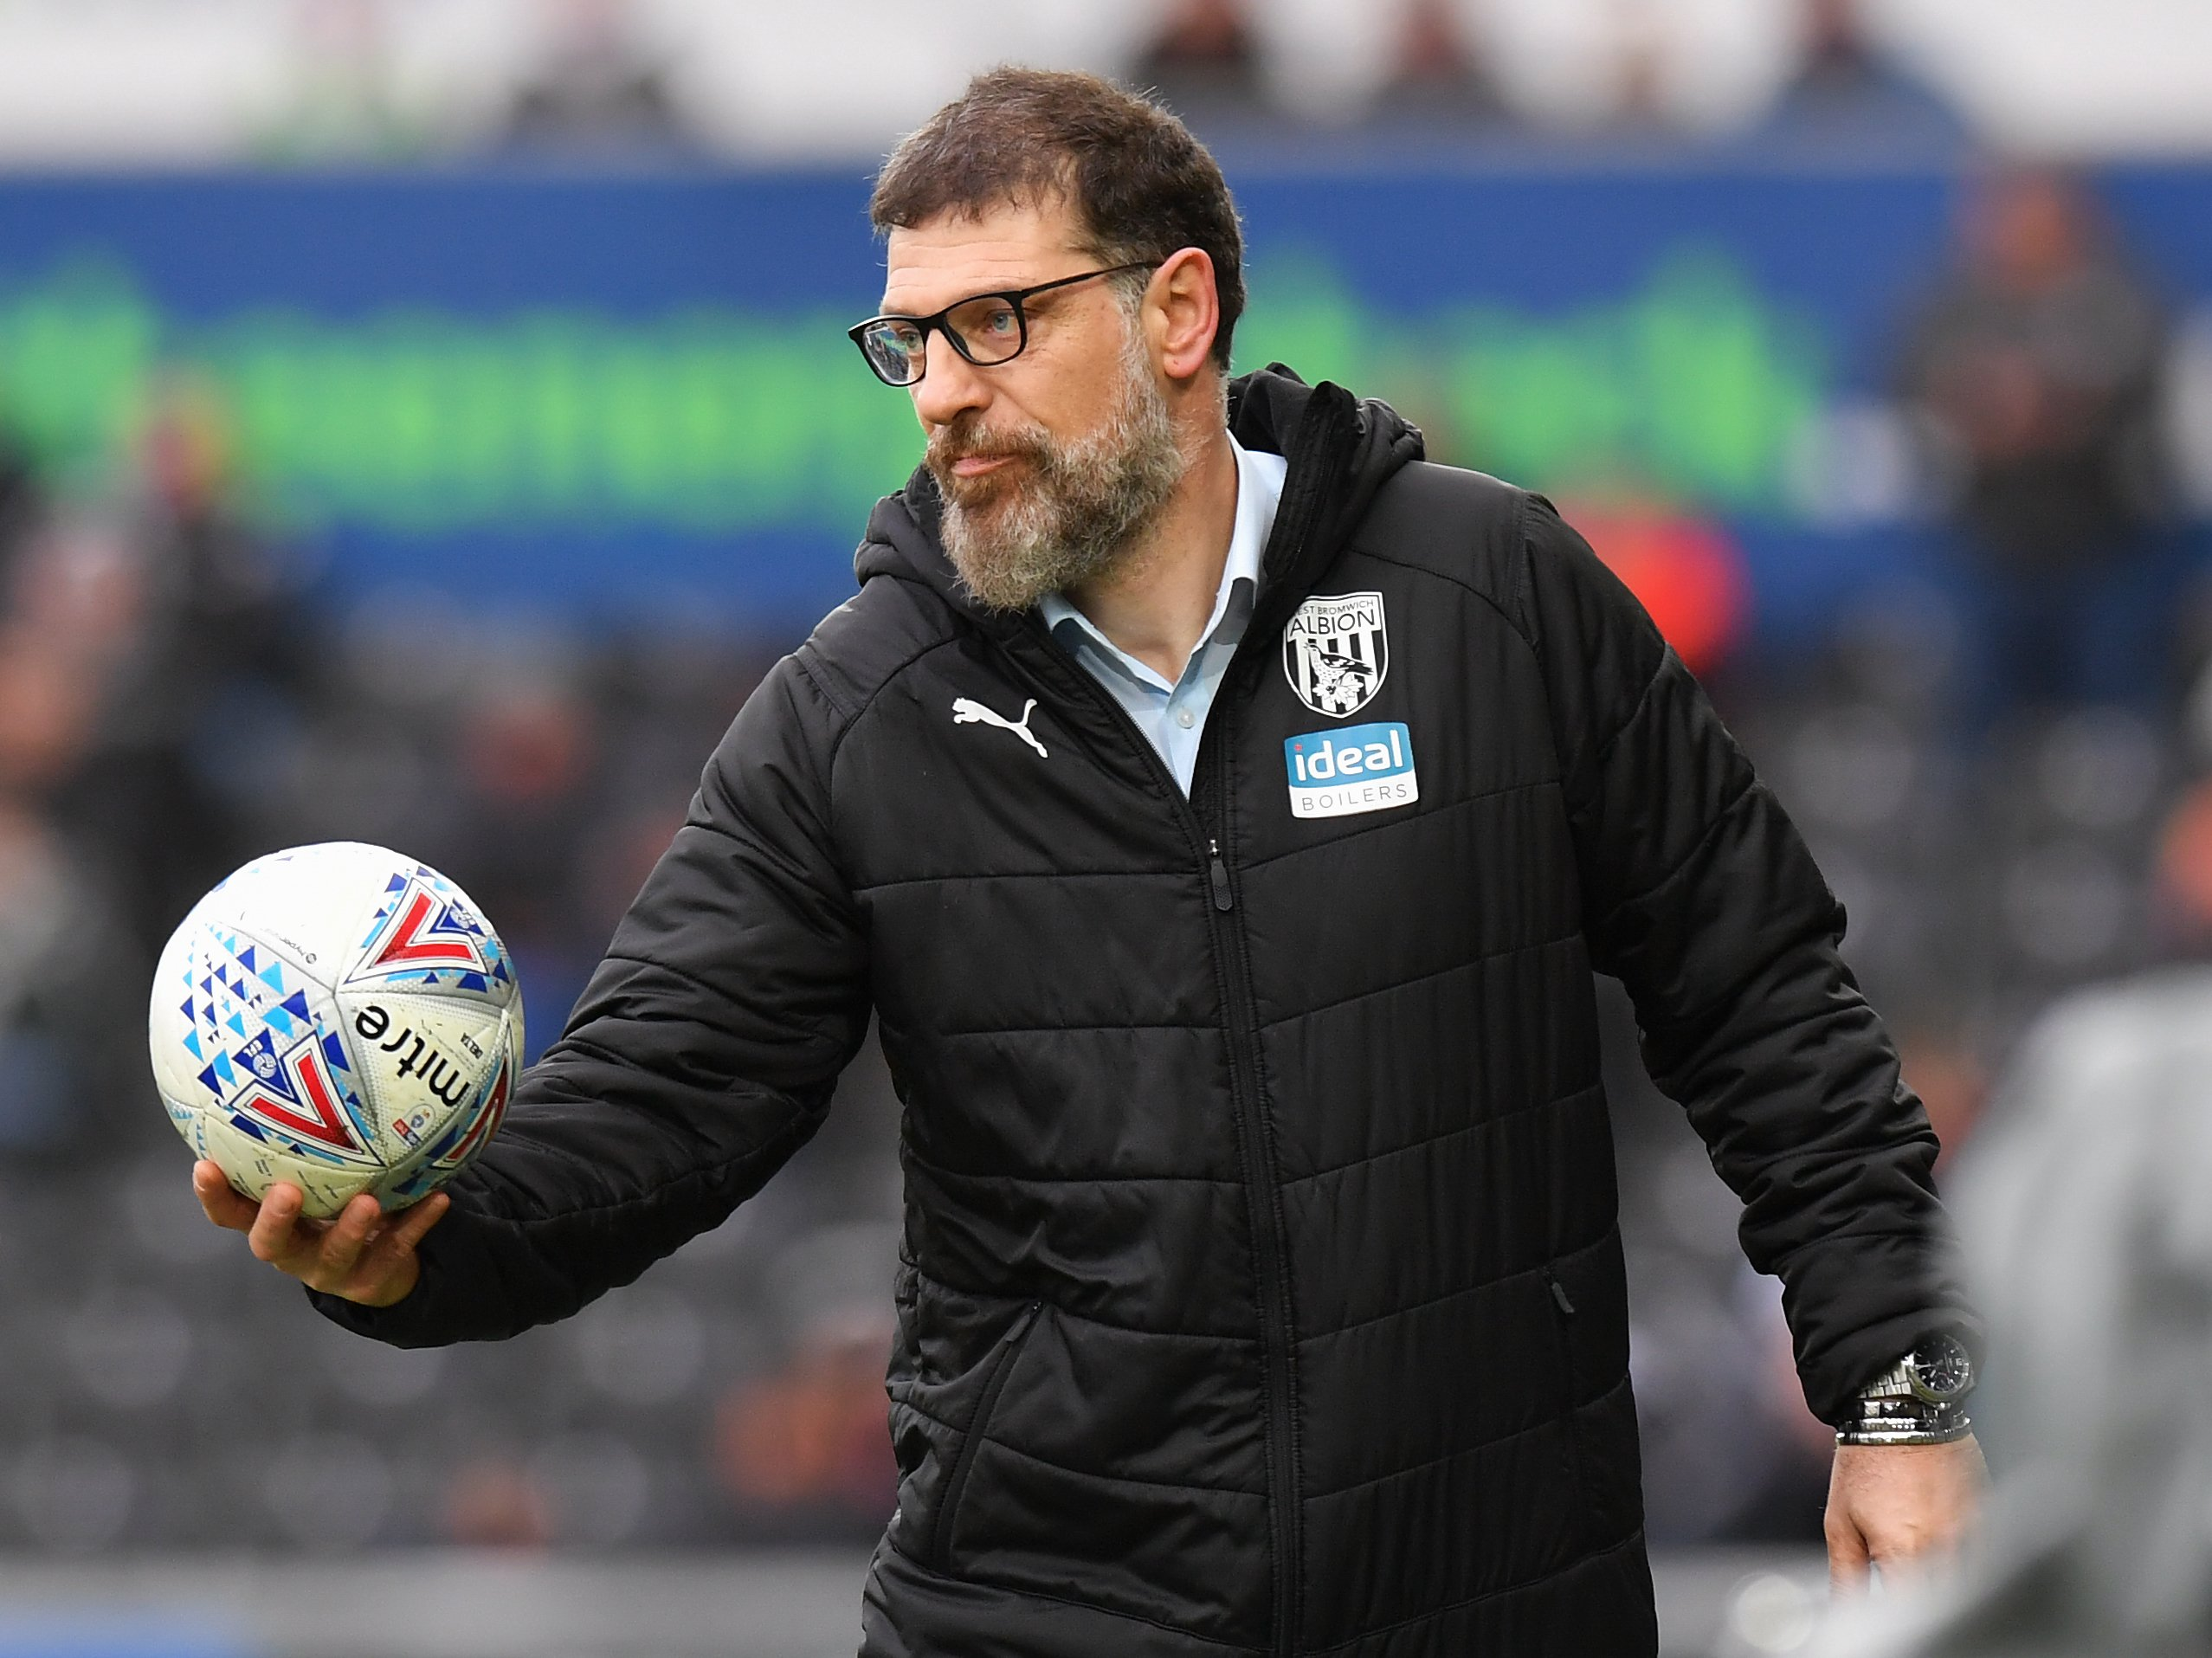 No problems for West Brom boss Slaven Bilic